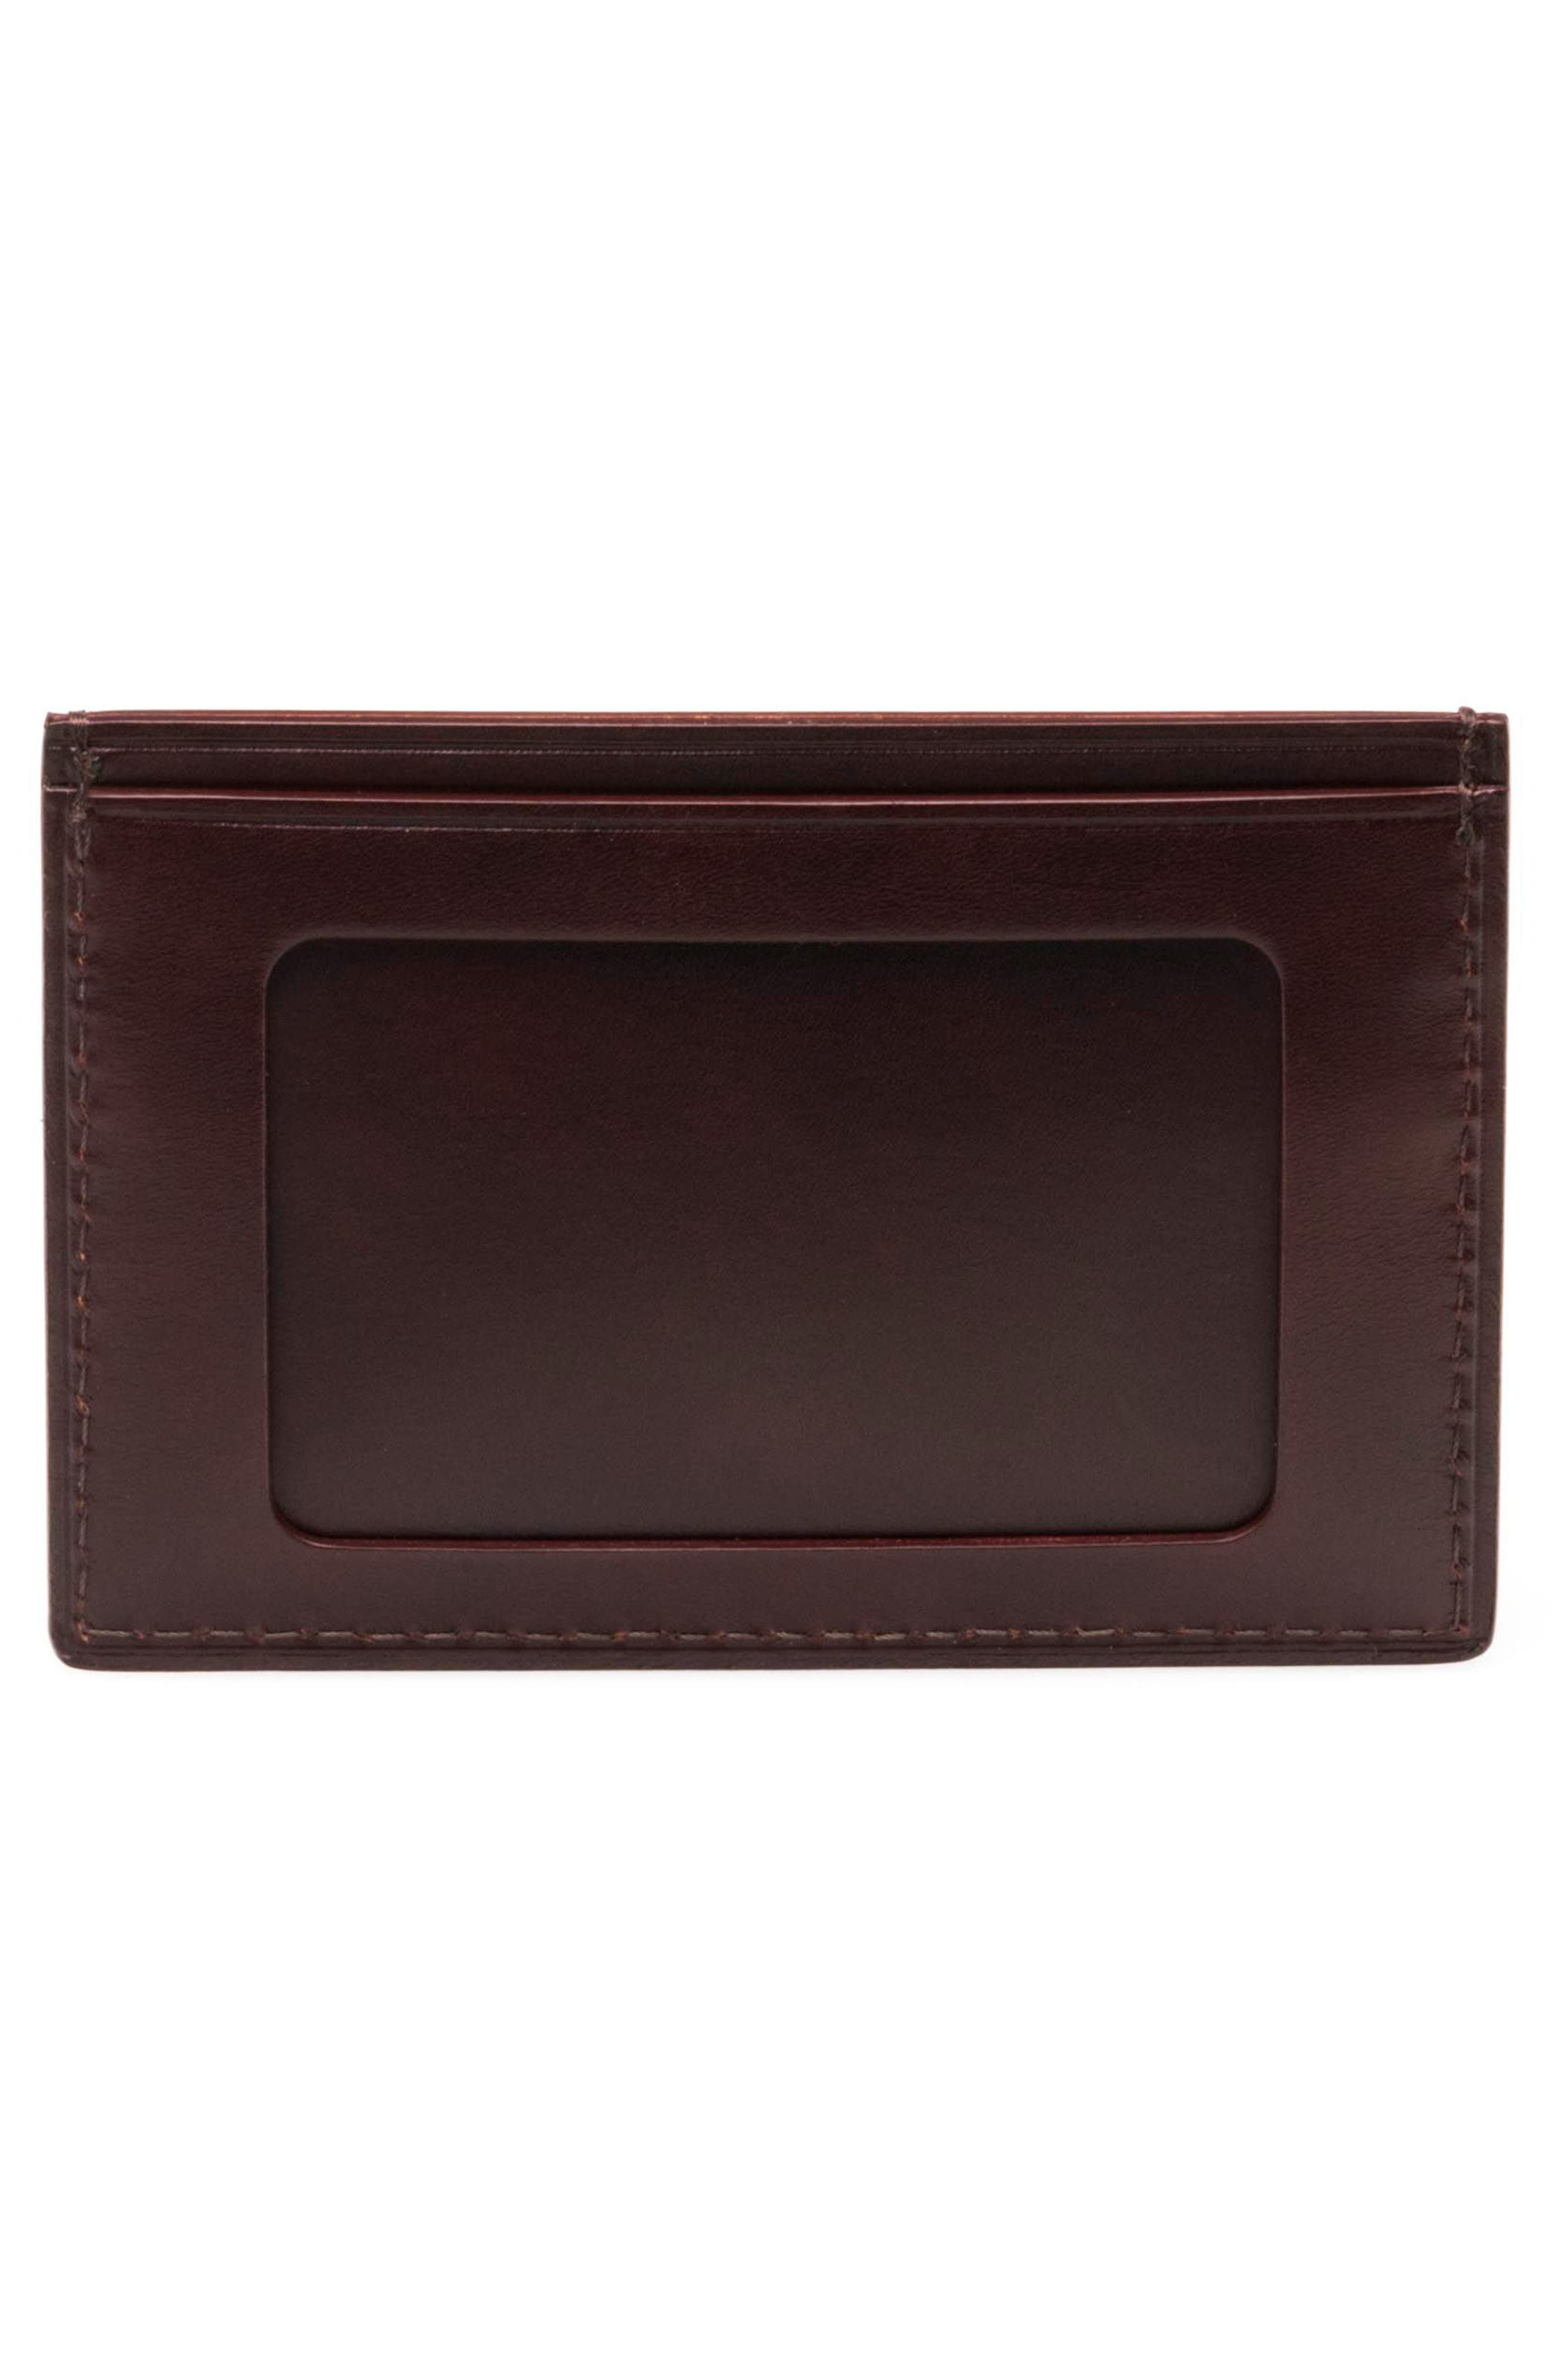 Leather Card Case,                             Alternate thumbnail 2, color,                             210